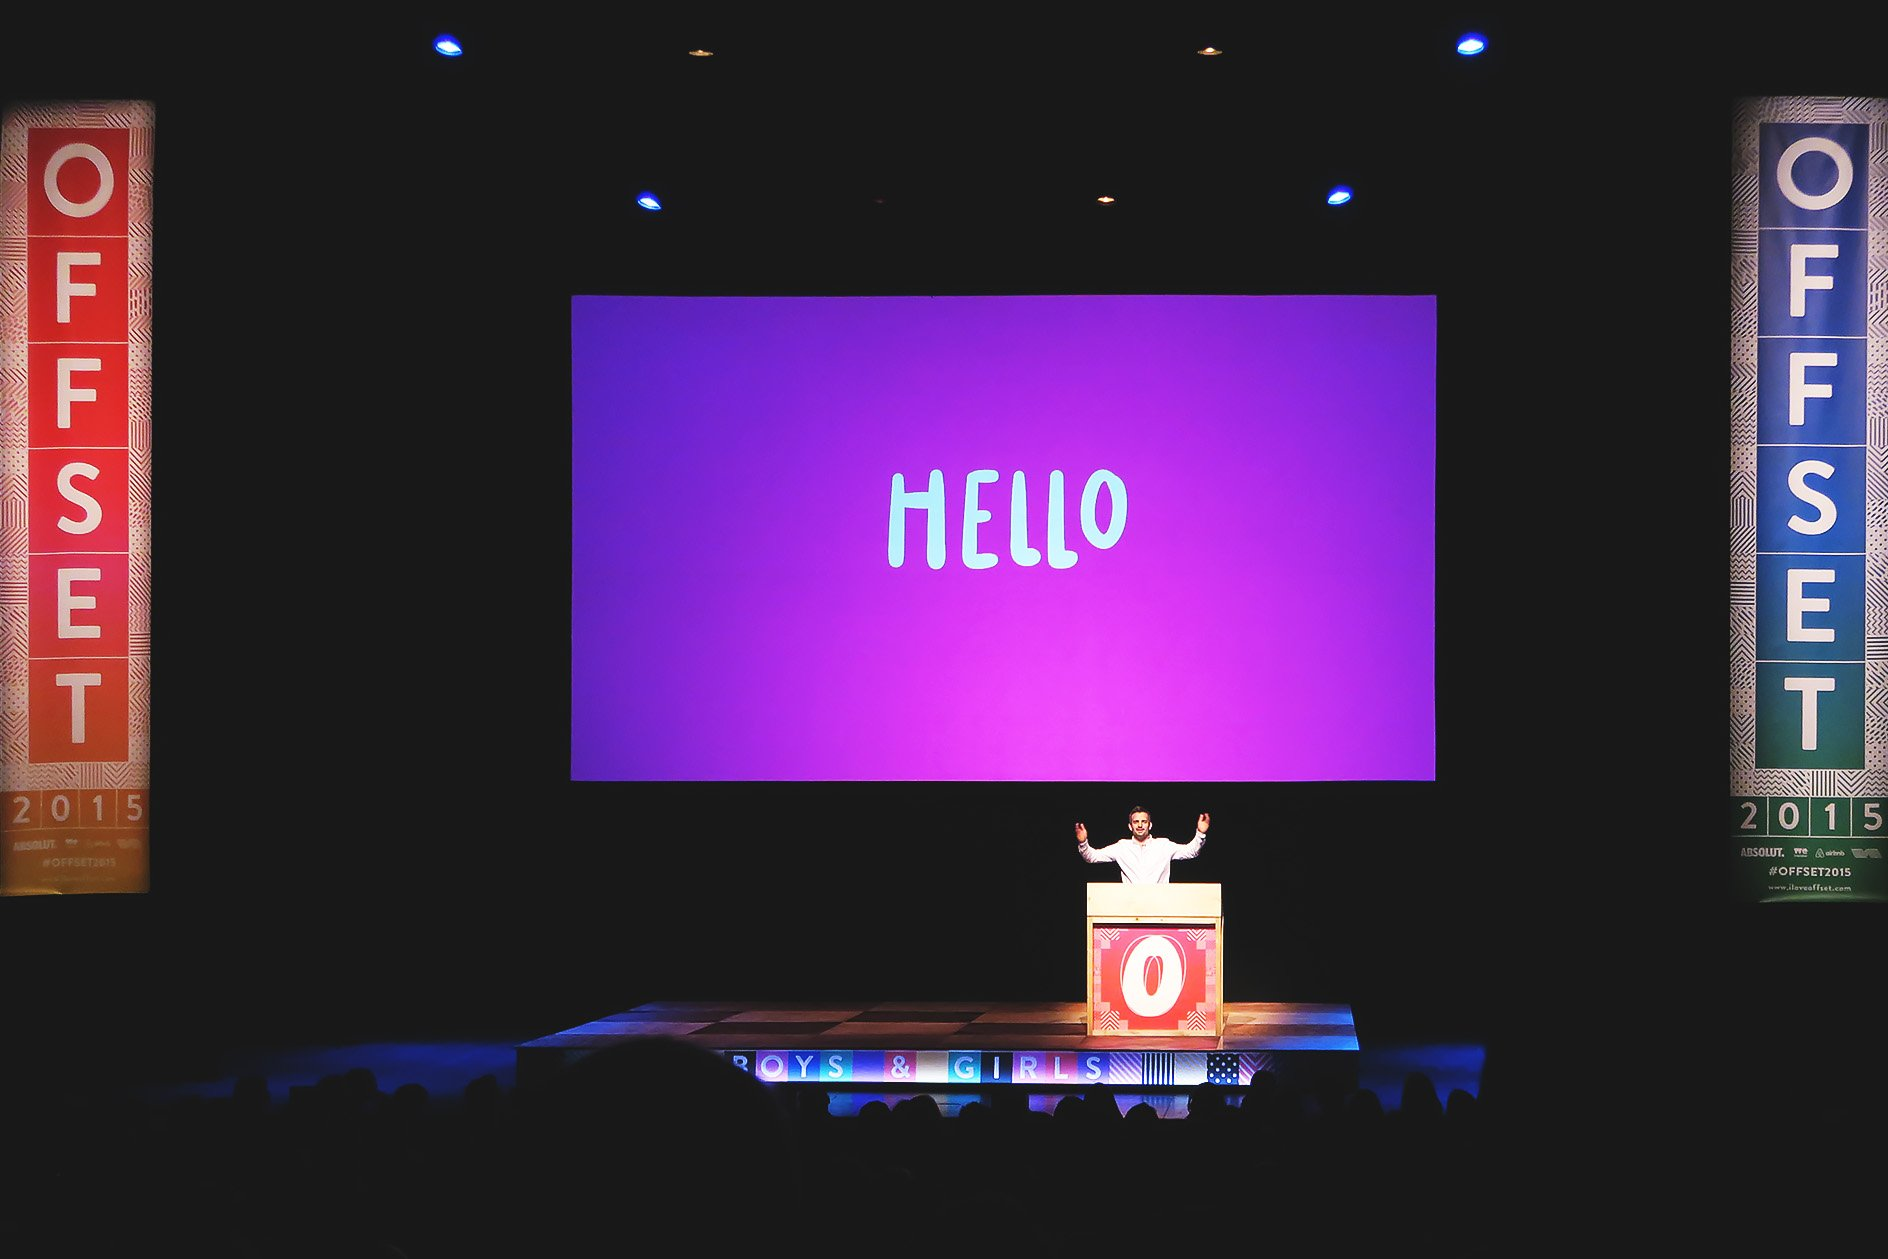 Boys and Girls at OFFSET 2015